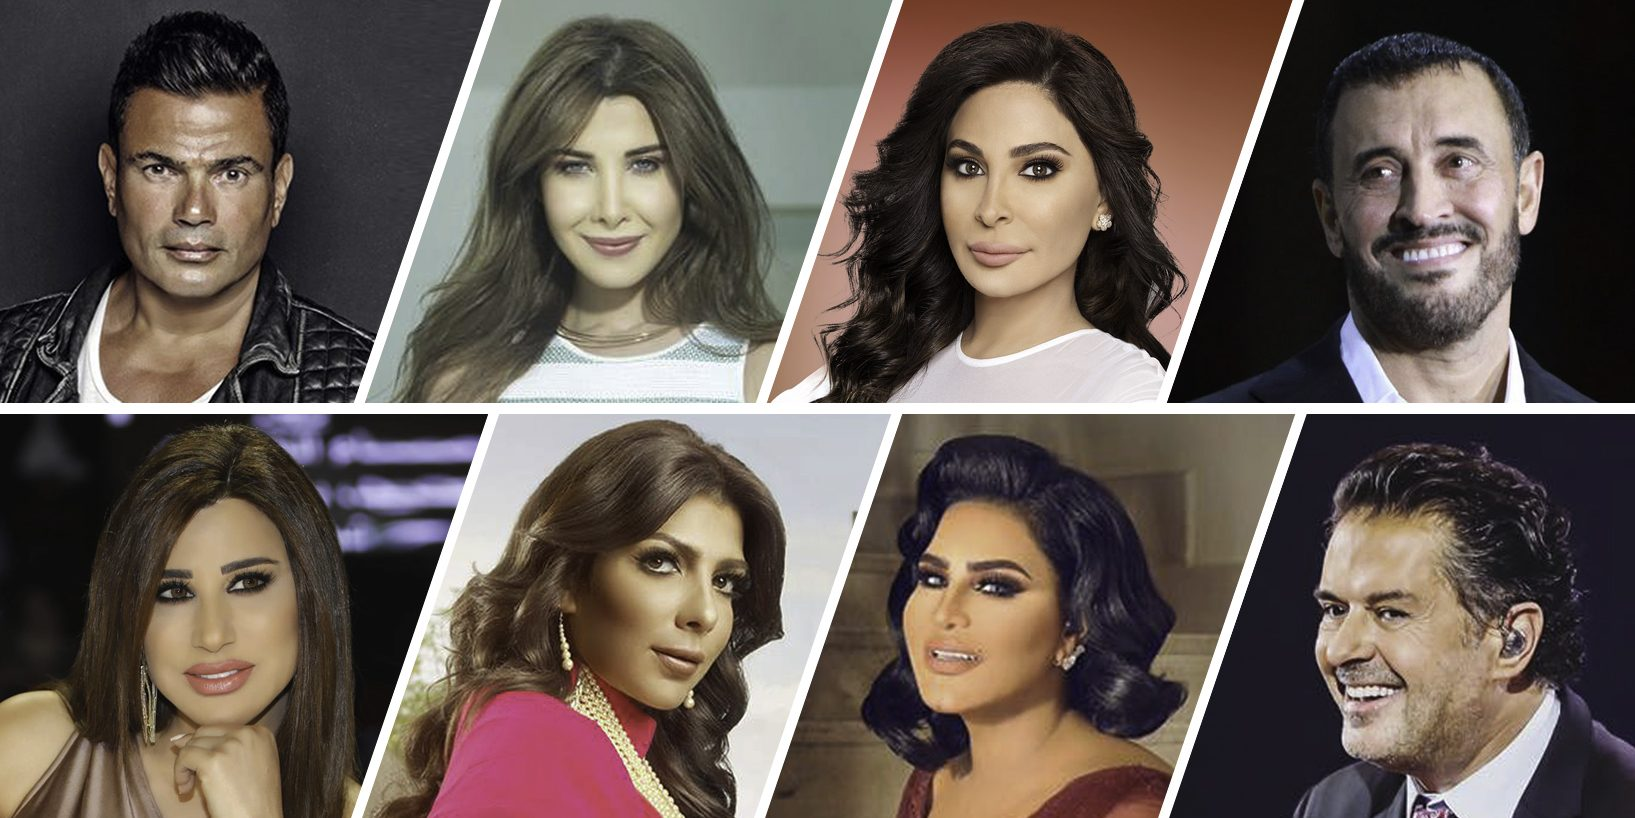 The Top 10 Arab Singers